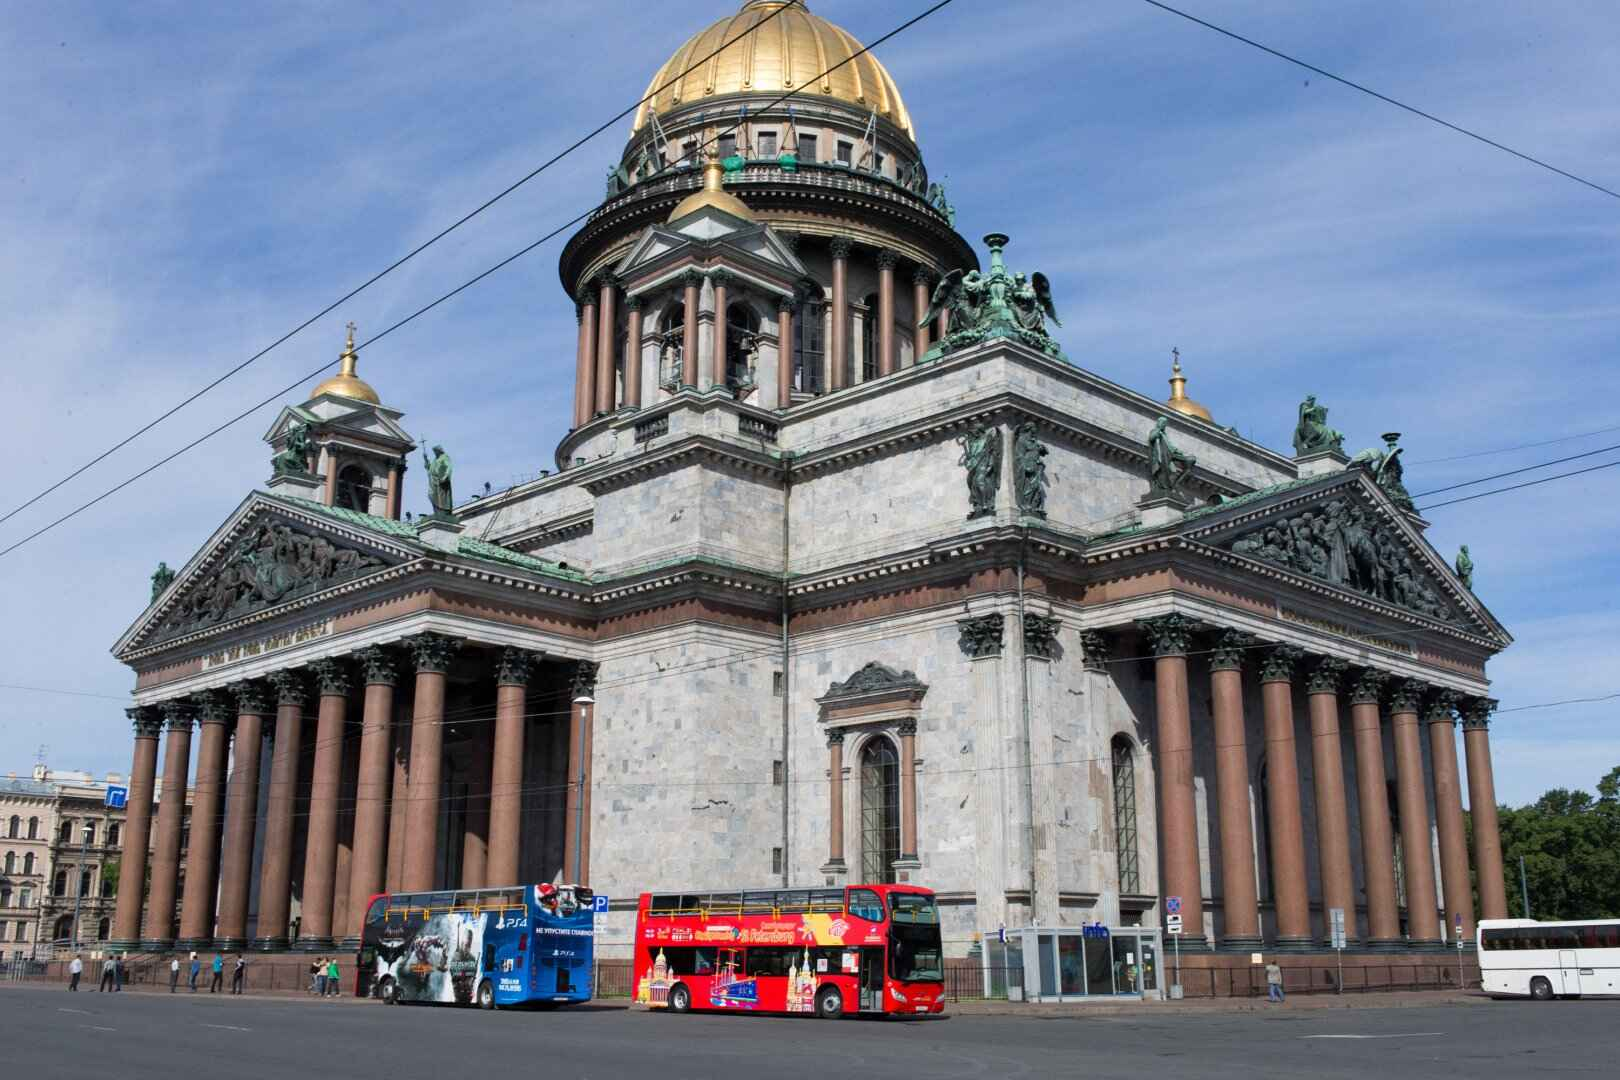 : Sightseeing tour across St. Petersburg by bus | Buses City Sightseeing | Map St. Petersburg City Pass, Фото 2